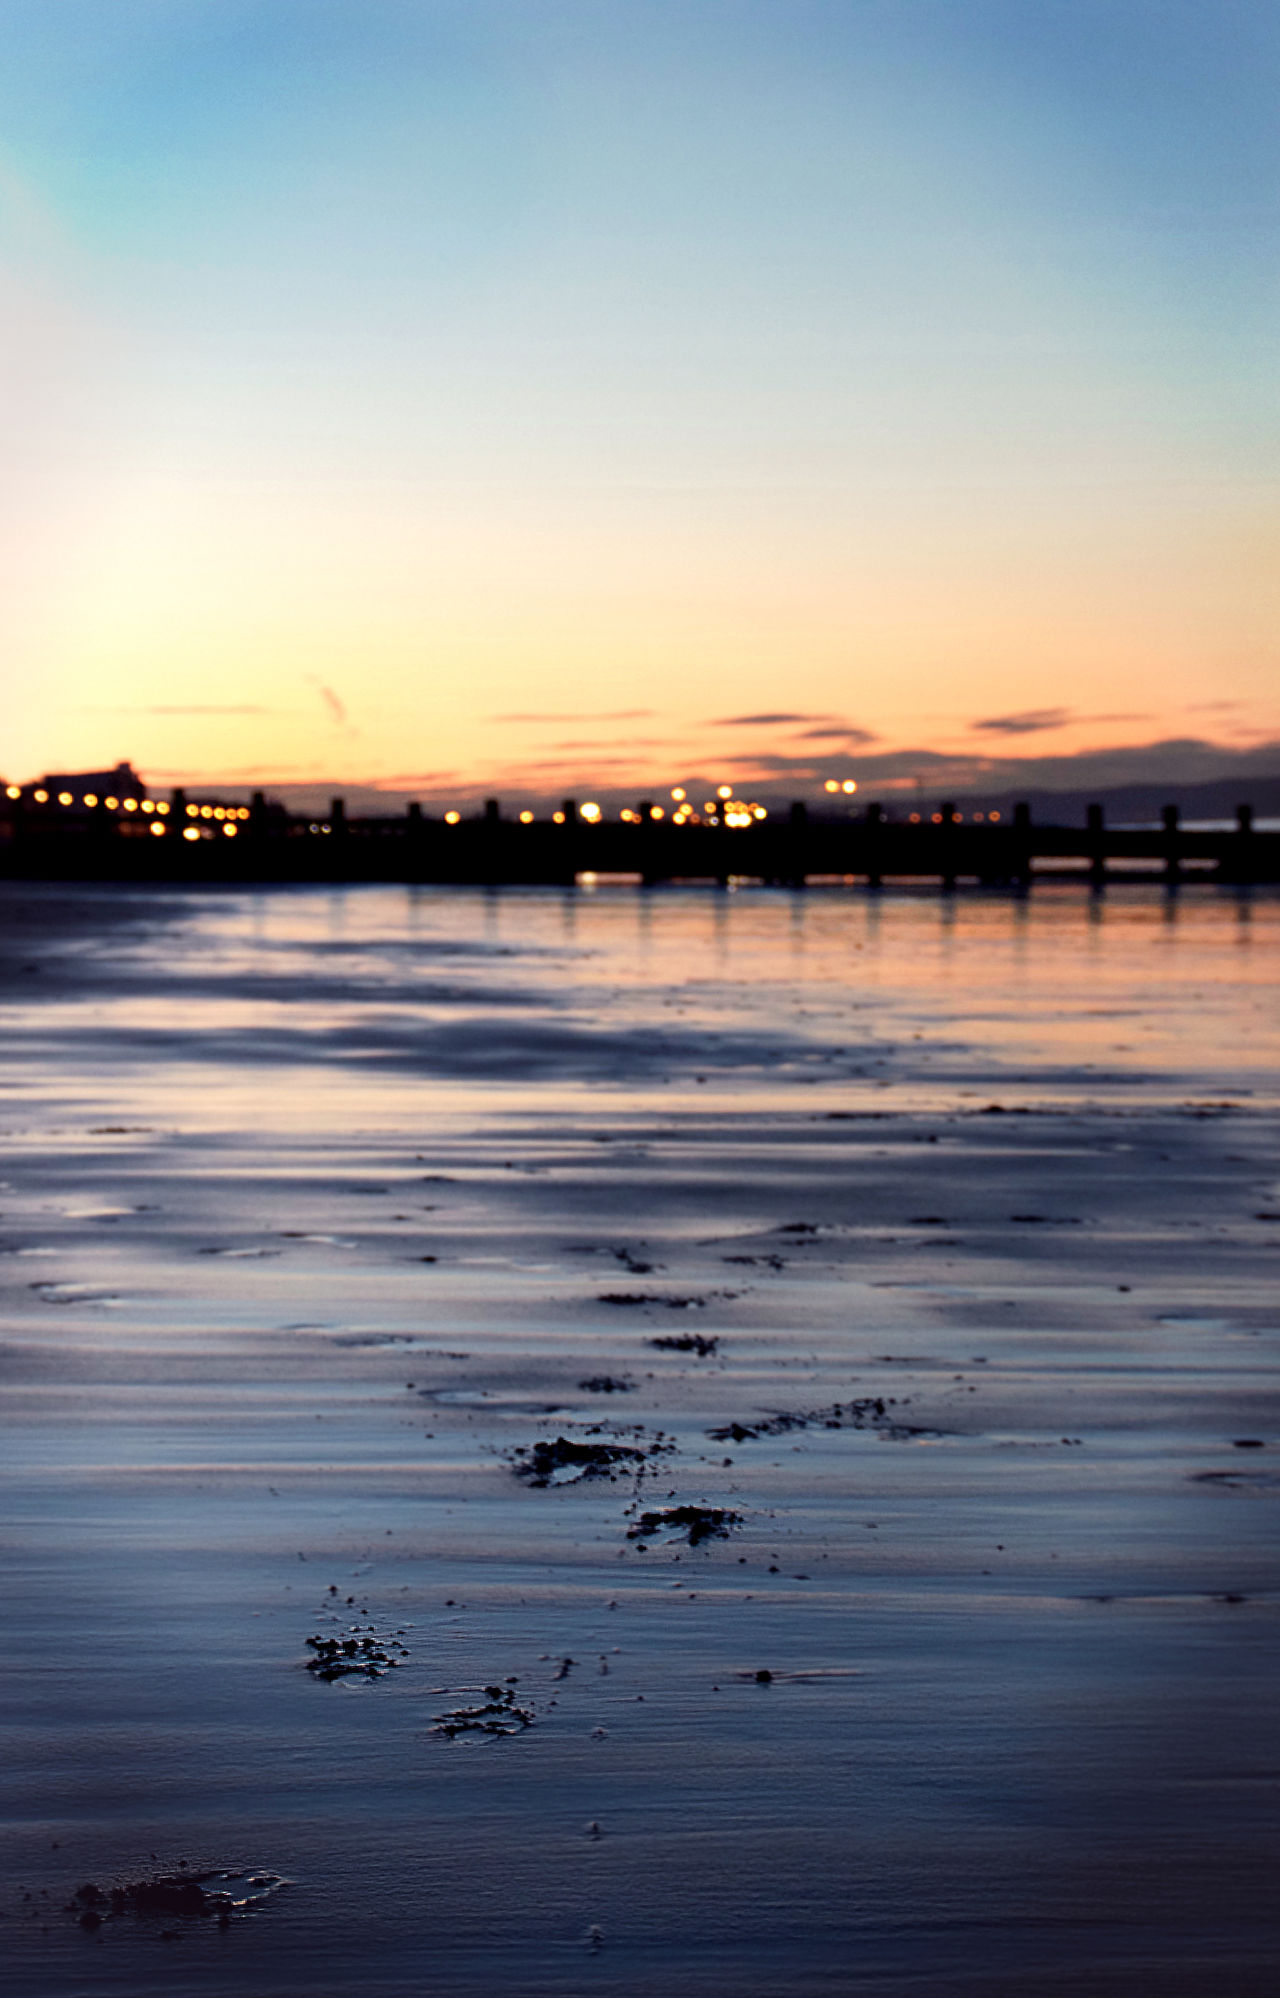 Portobello beach at night was one of many incredible experiences from my trip to Scotland. Beach Beauty In Nature EyeEm Gallery EyeEm Masterclass EyeEm Nature Lover Memories Nature Nature Portobello Beach, Edinburgh Reflection Scenics Scotland Sunset